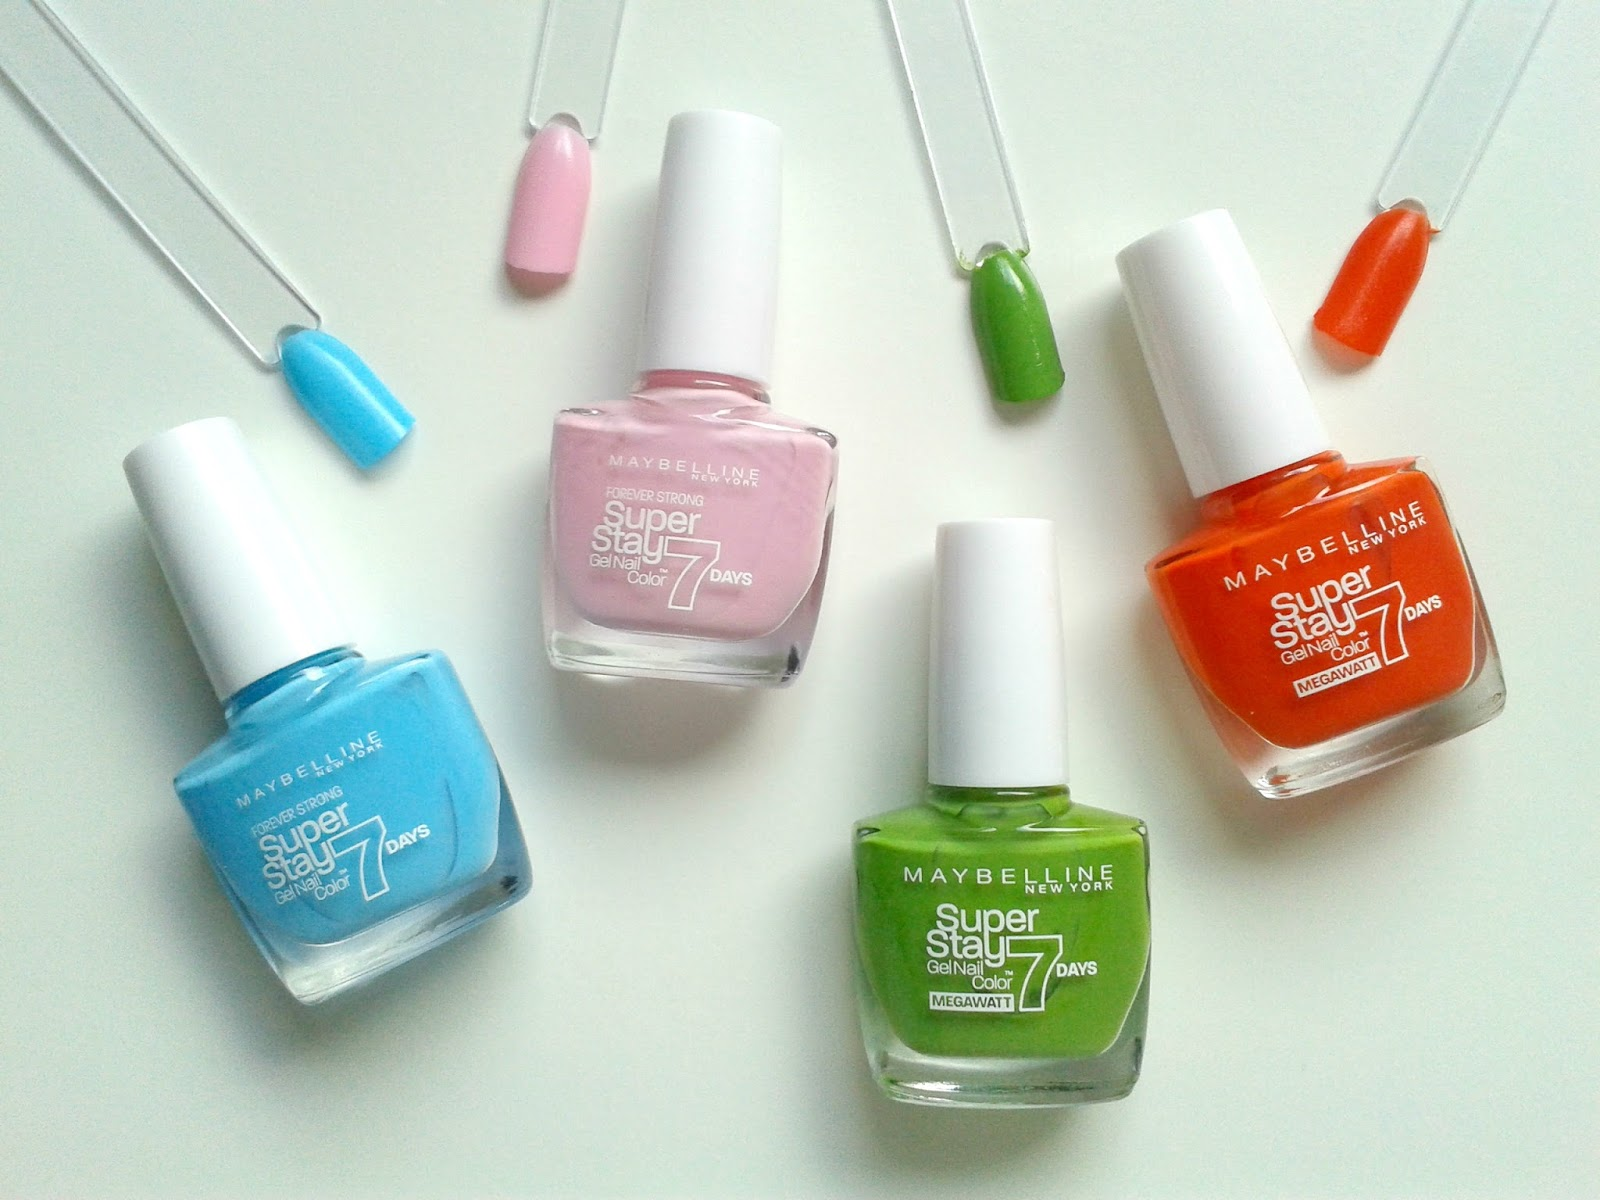 Maybelline New York Super Stay 7 Days Gel Nail Colours Beauty Review Swatches